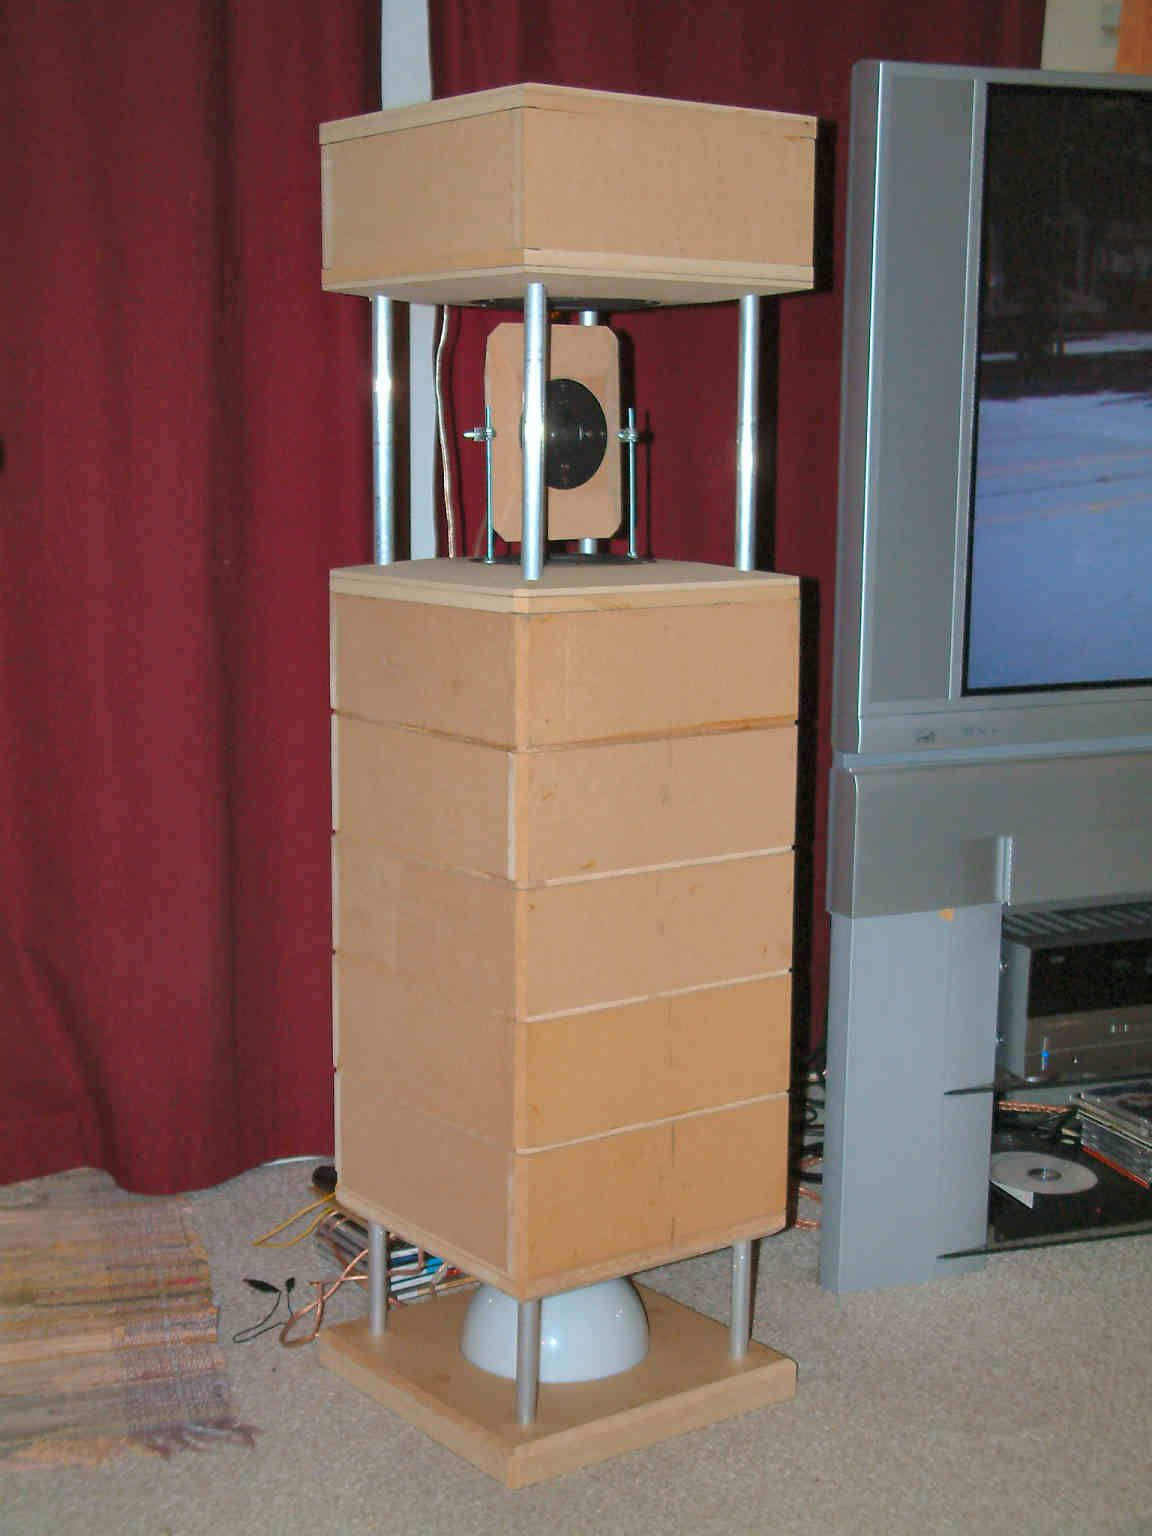 Omnidirectional Speaker Project, any interest, help? - Page 5